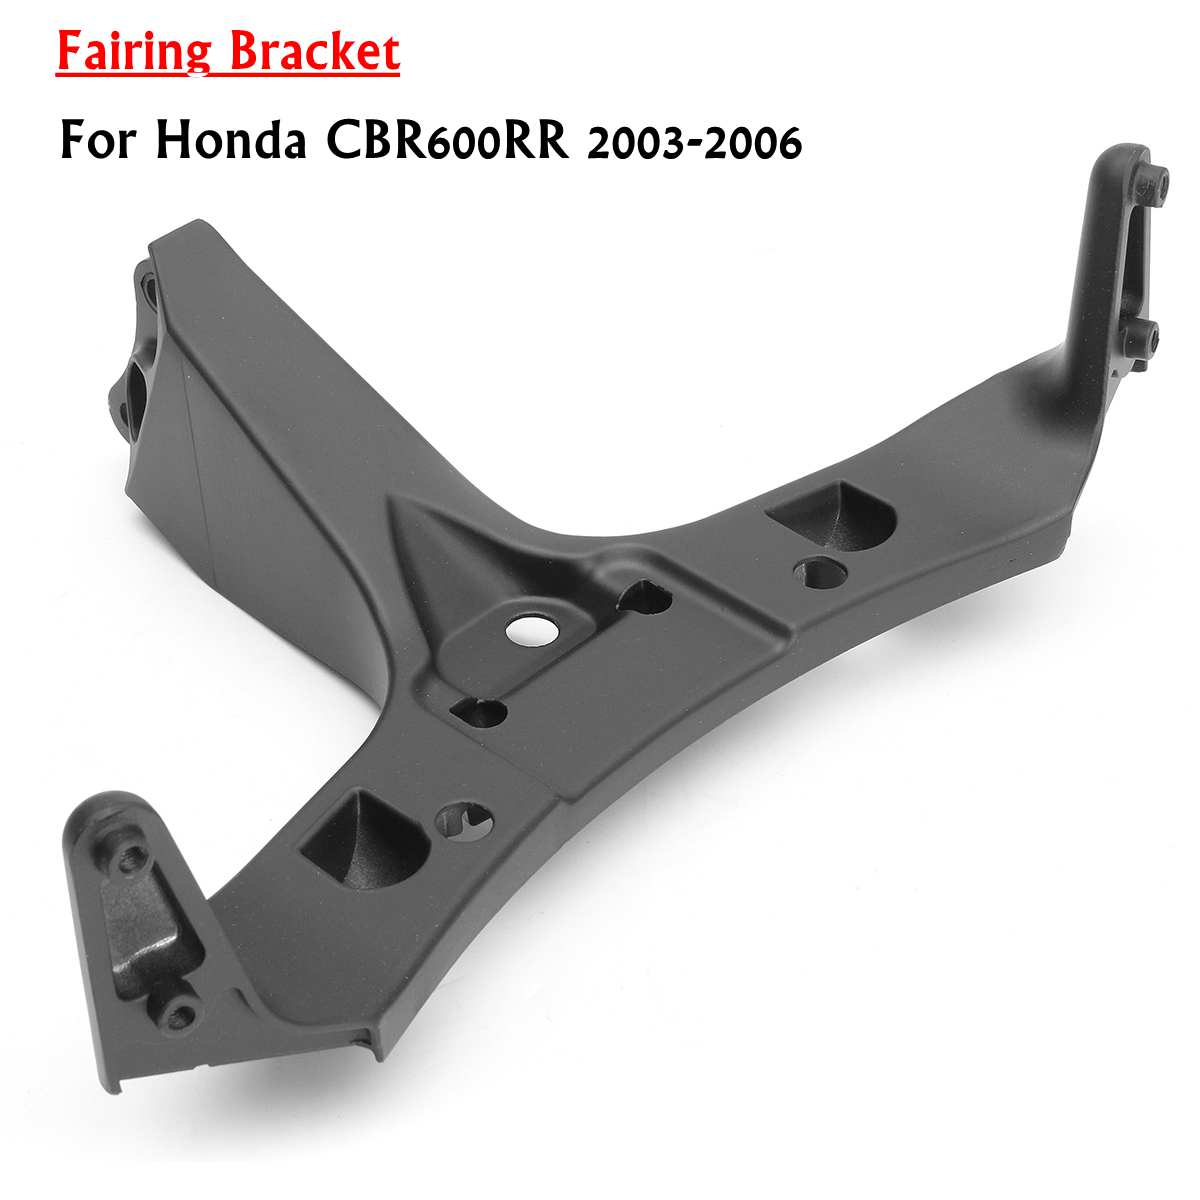 New Front Upper Fairing Stay Bracket For Honda CBR 600RR 2003-2006 04 05 Black